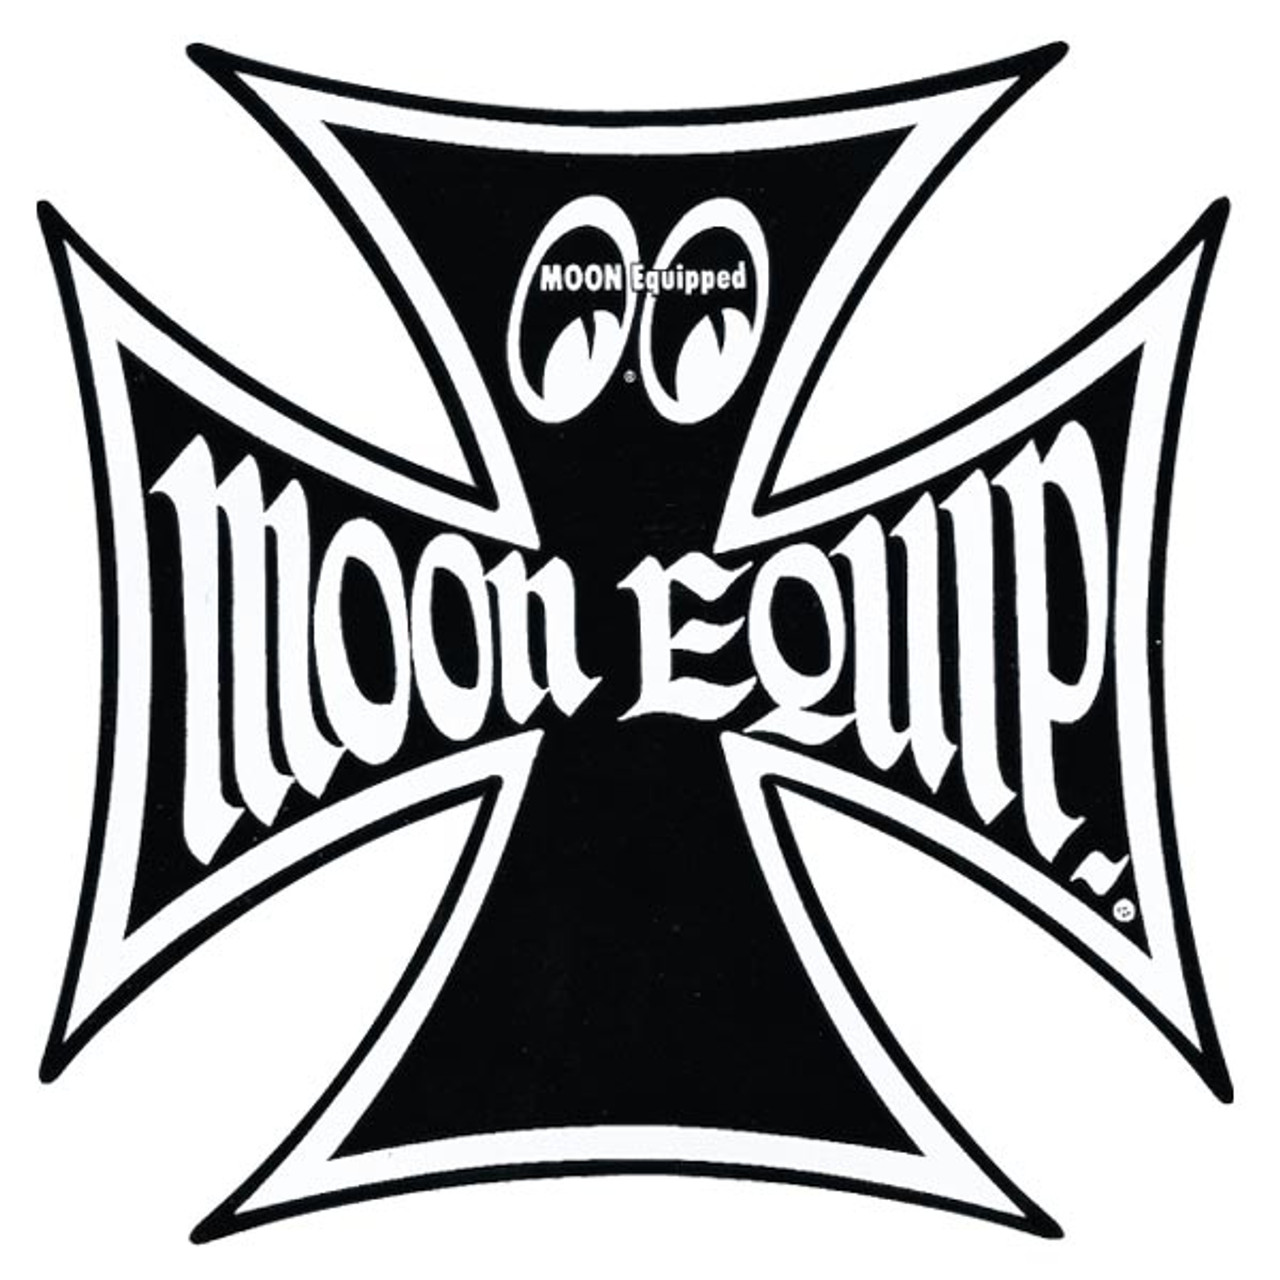 Moon Maltese Cross Sticker - 6""